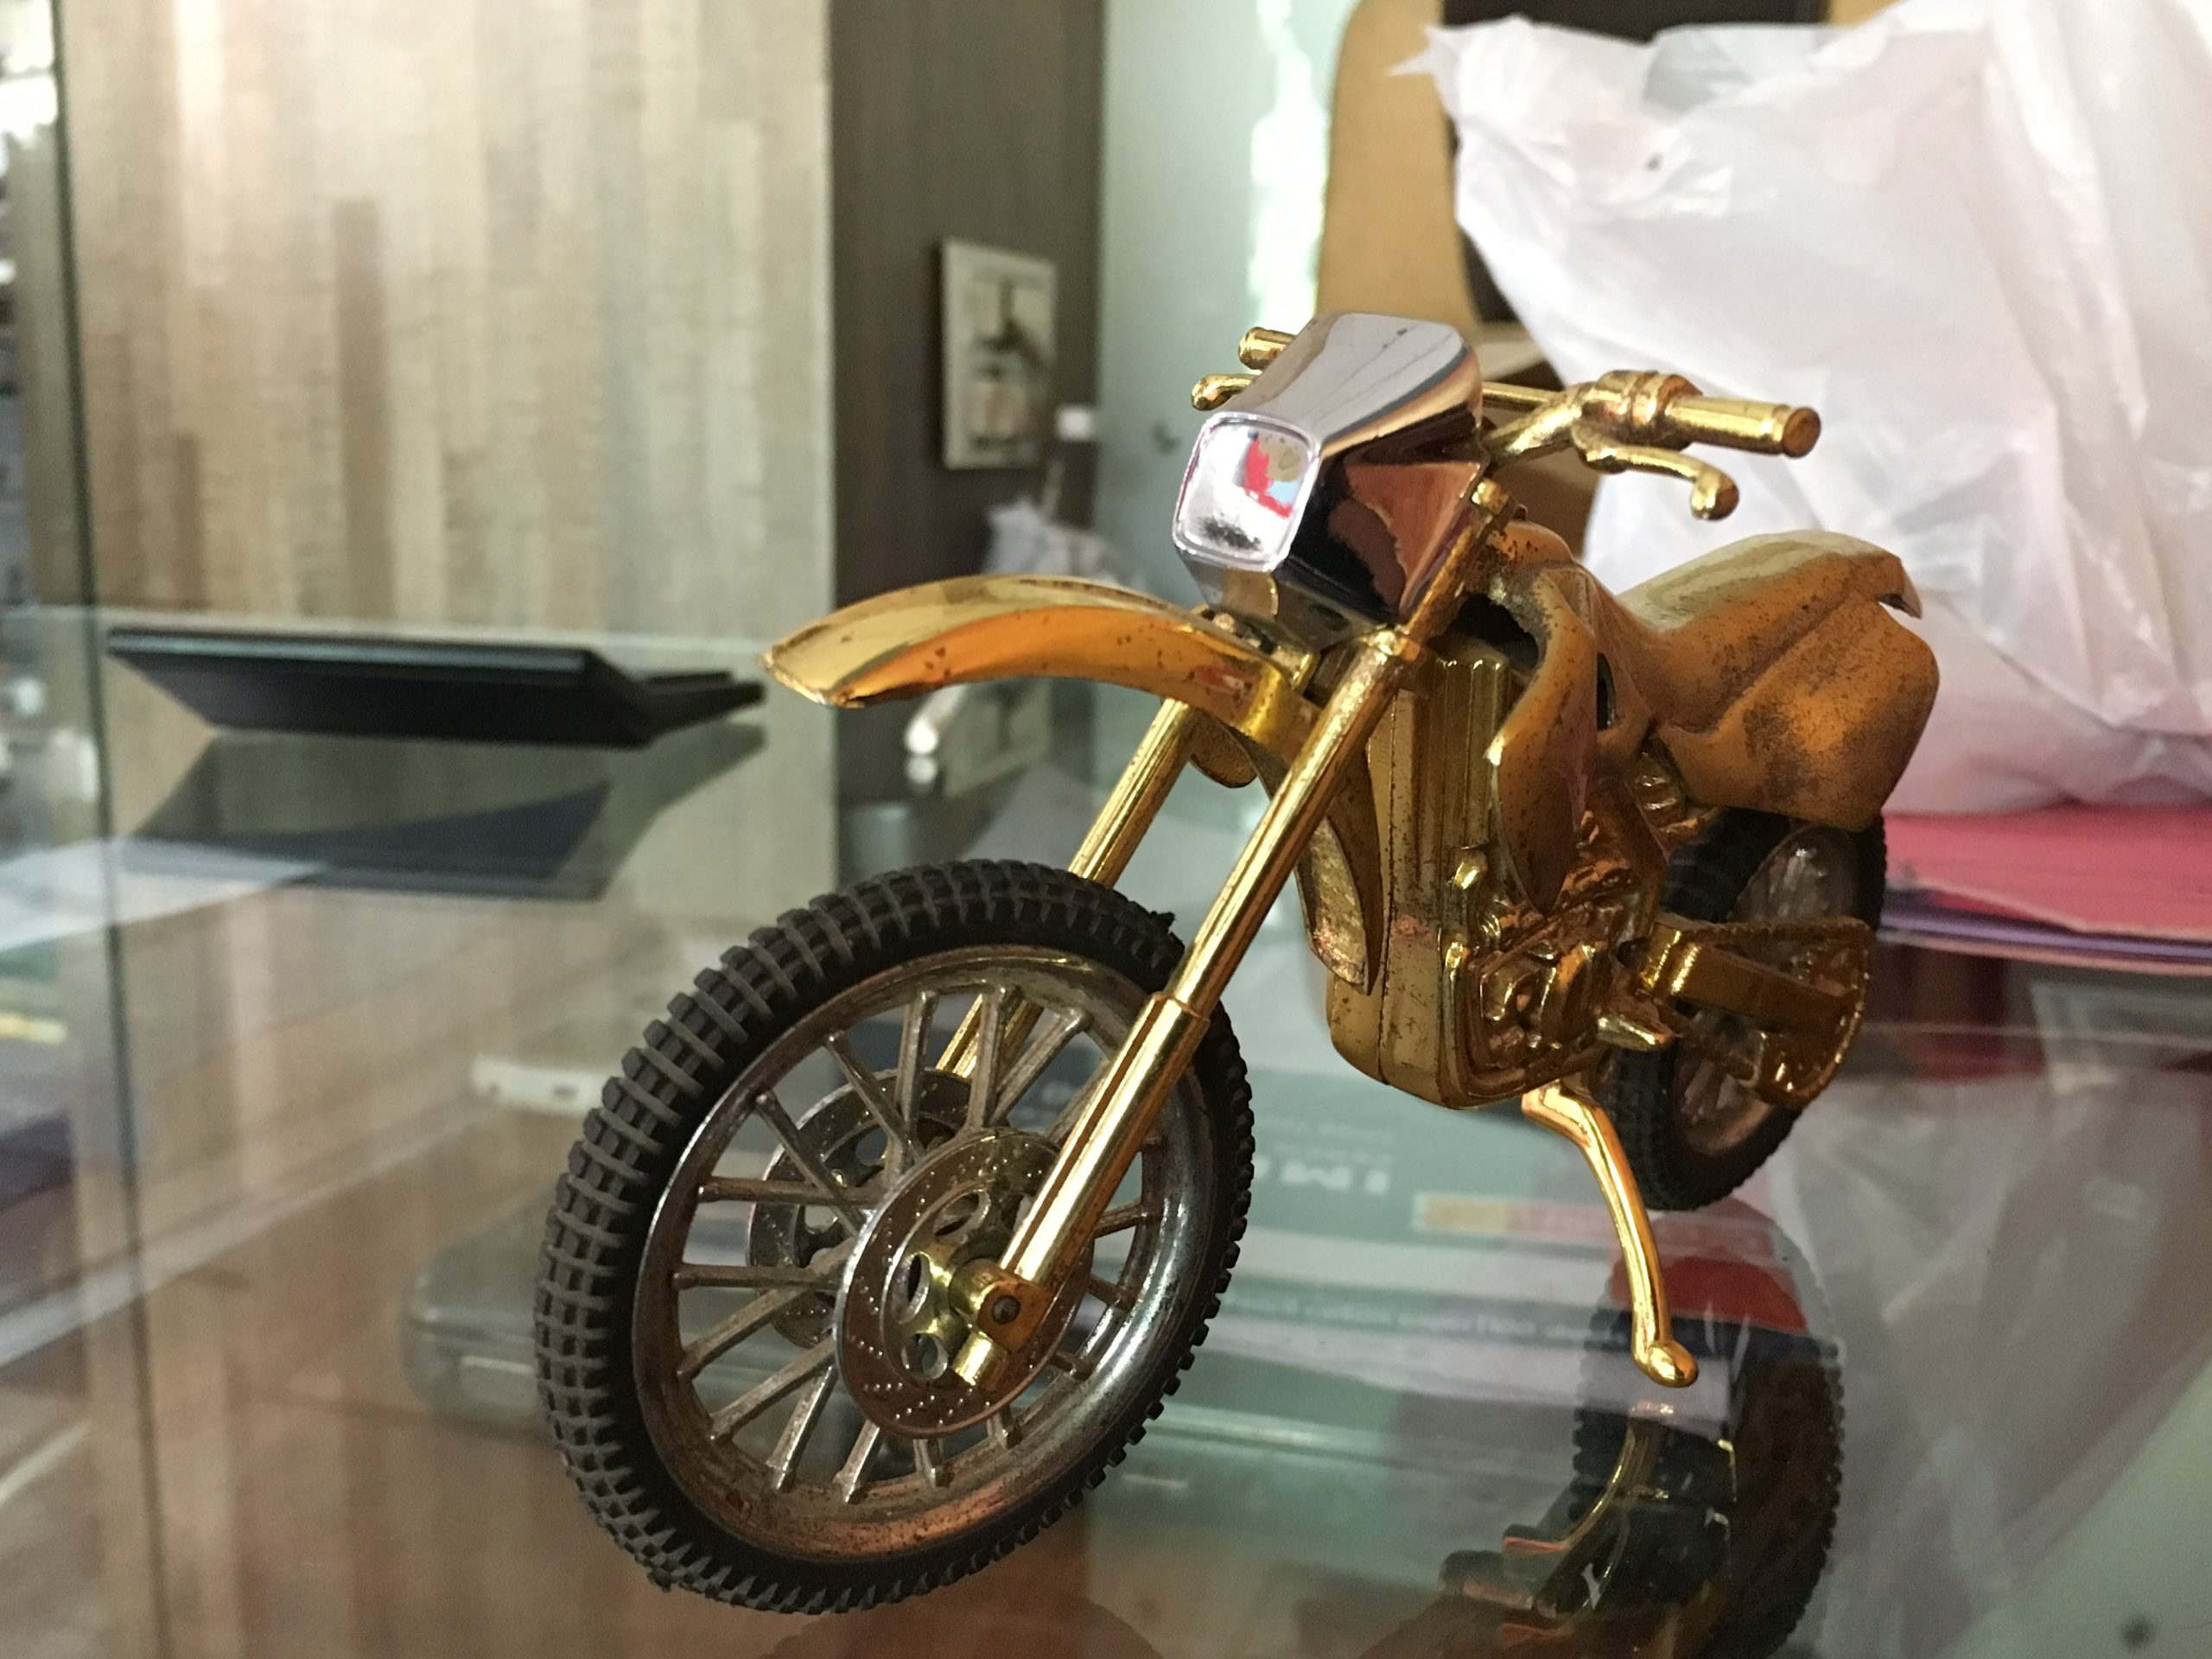 Miniature of motorcycle